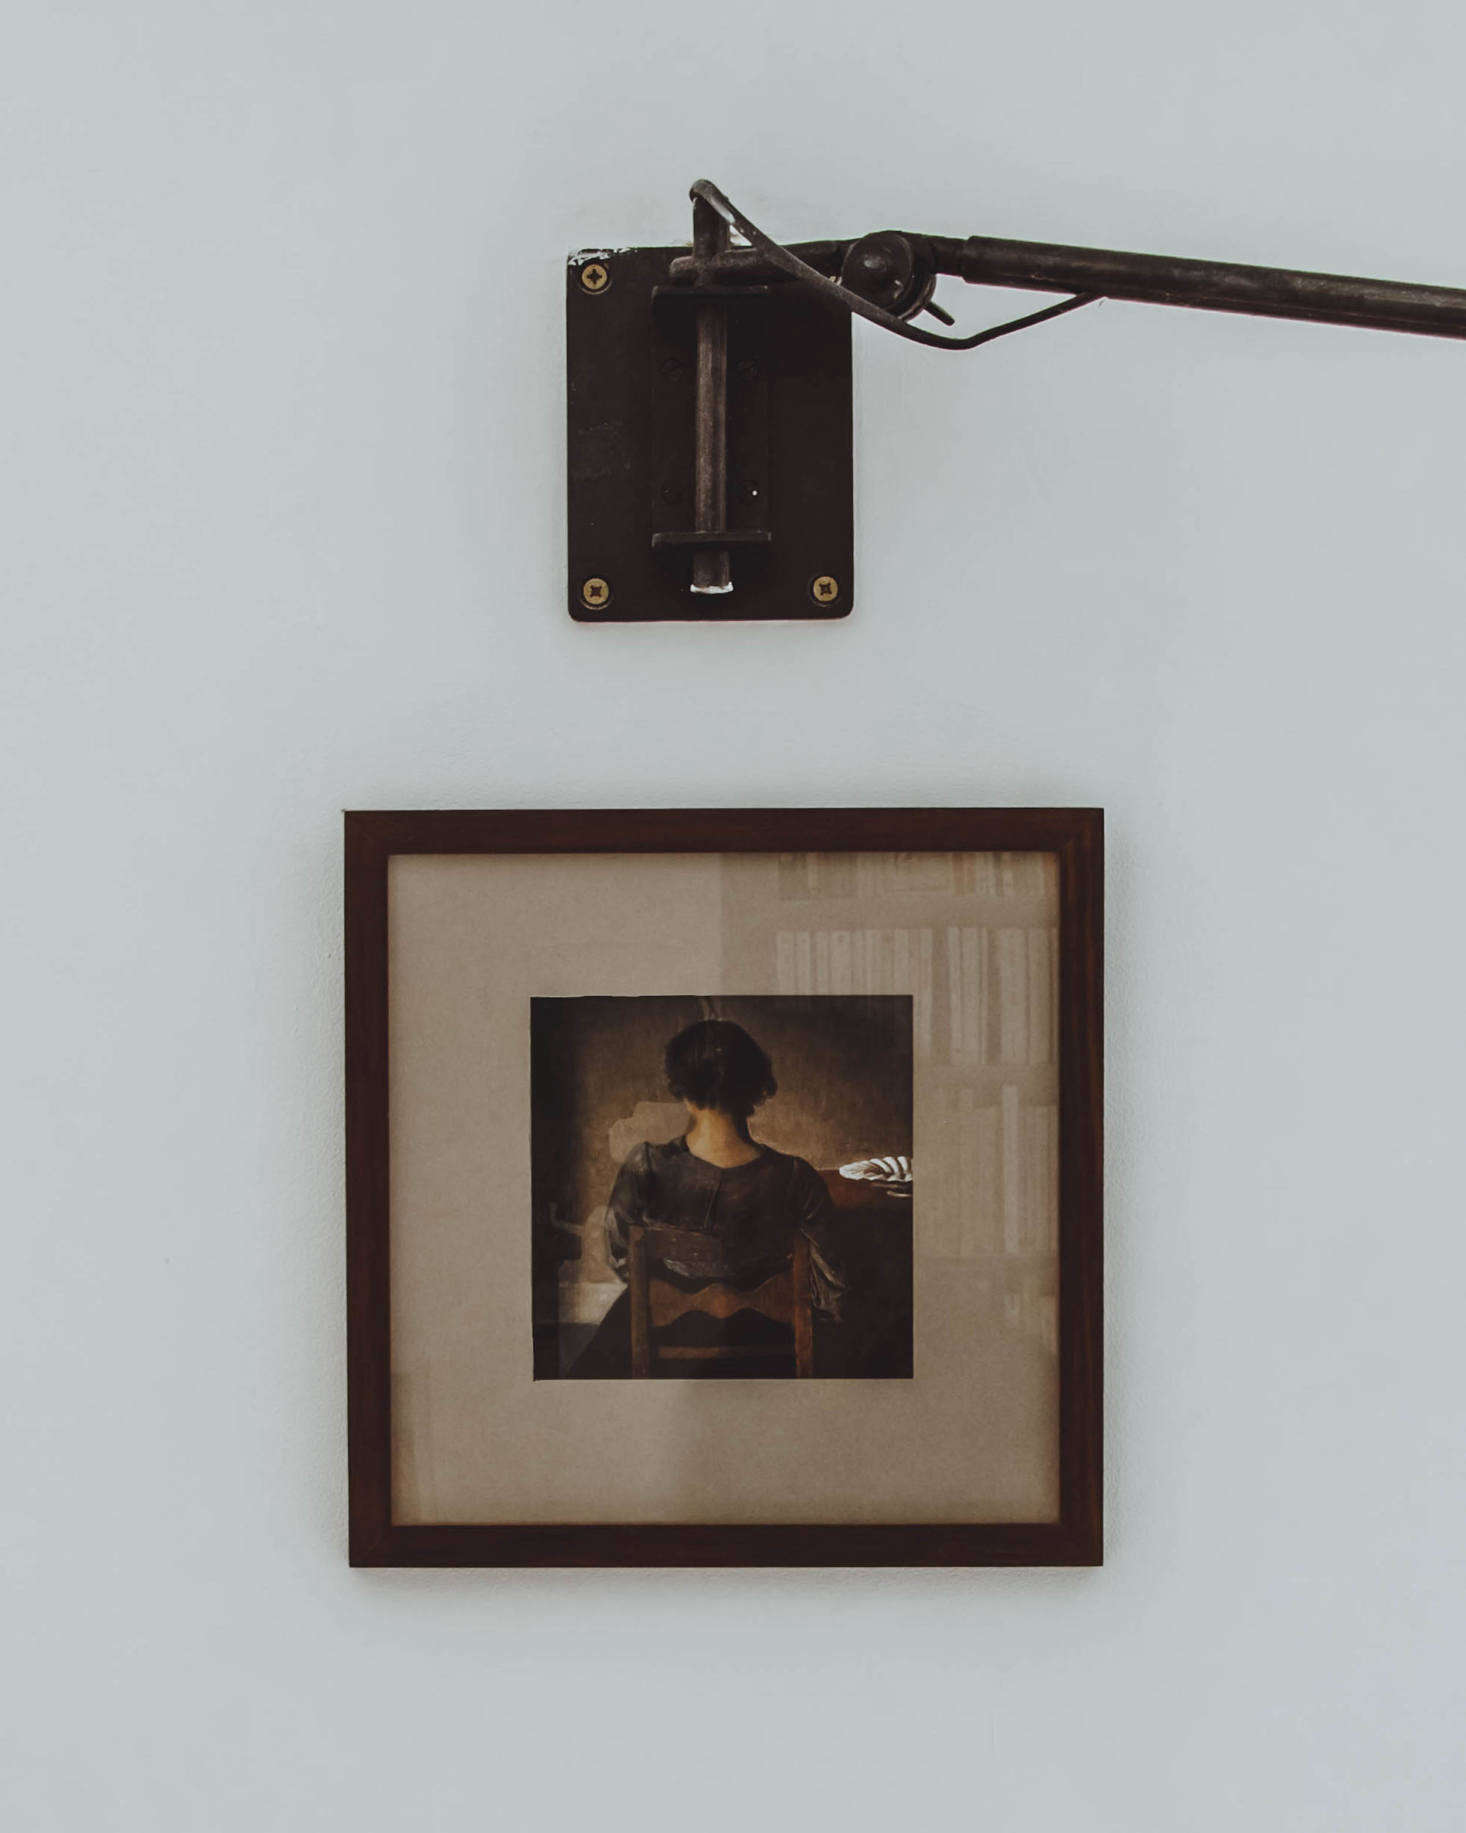 A Hammershoi print hangs on one wall. (N.B.: For a room inspired by Hammershoi, see Kitchen of the Week: A Culinary Space Inspired by a Painting.)